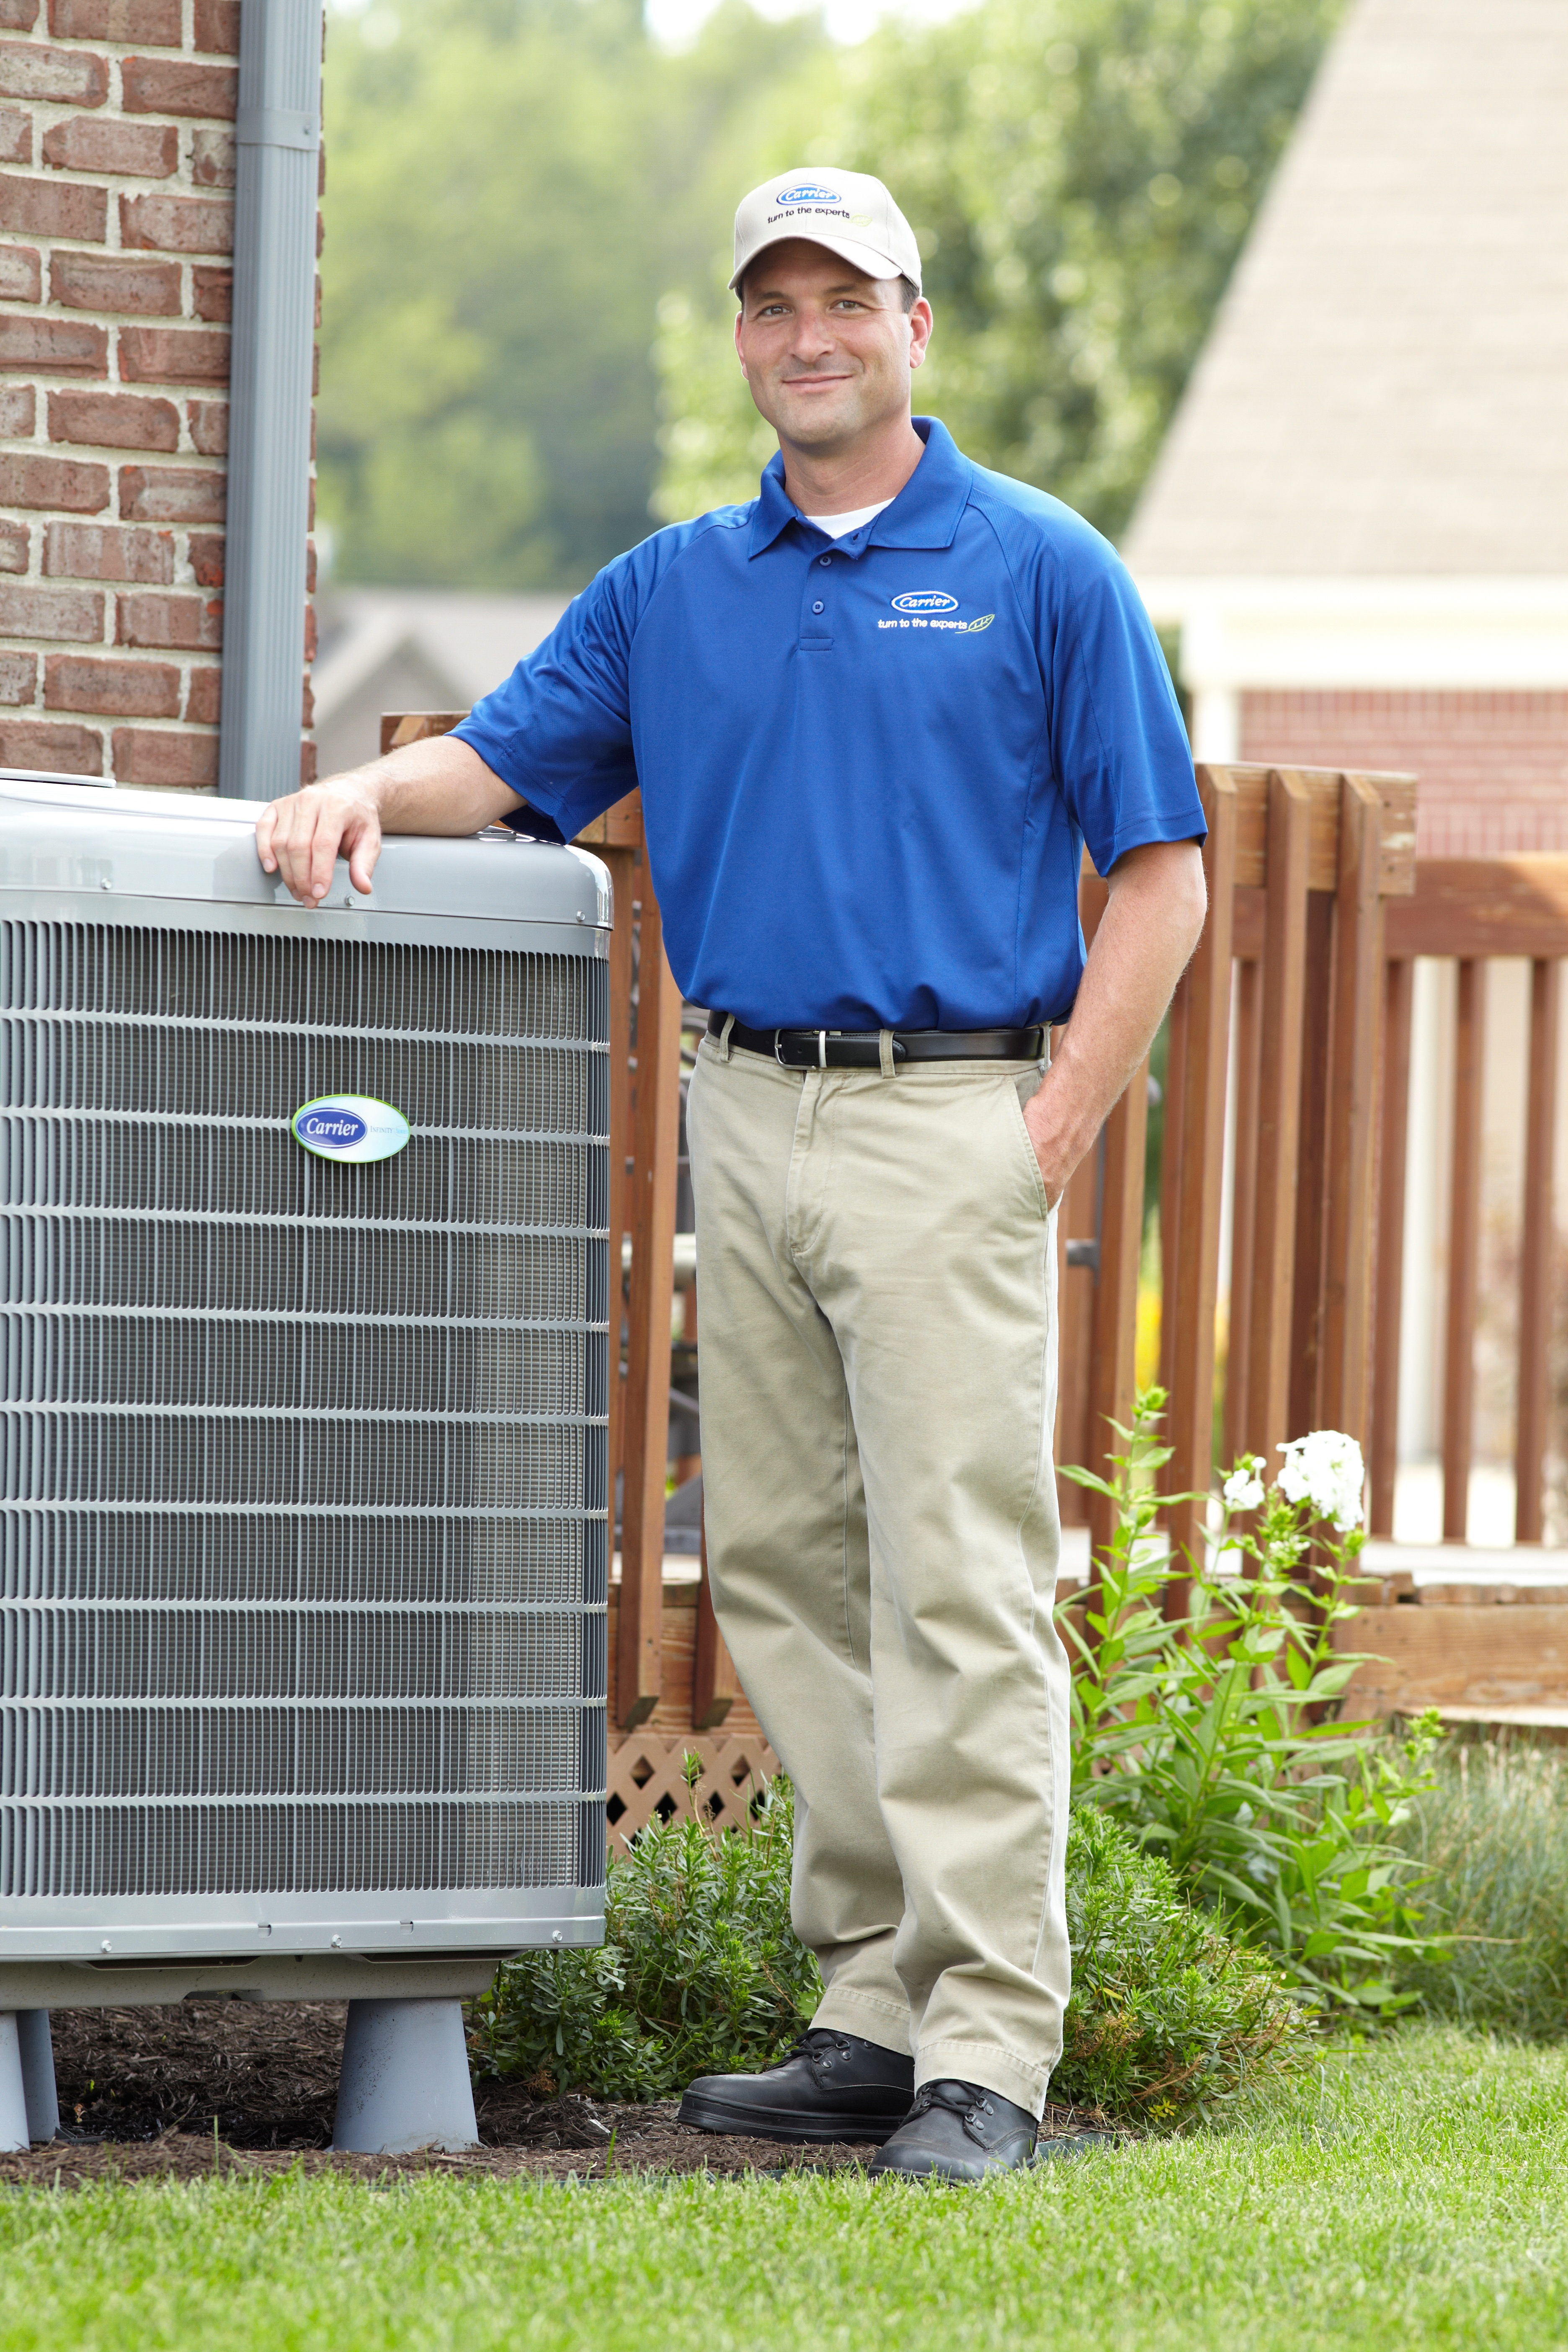 When to Call the HVAC Experts